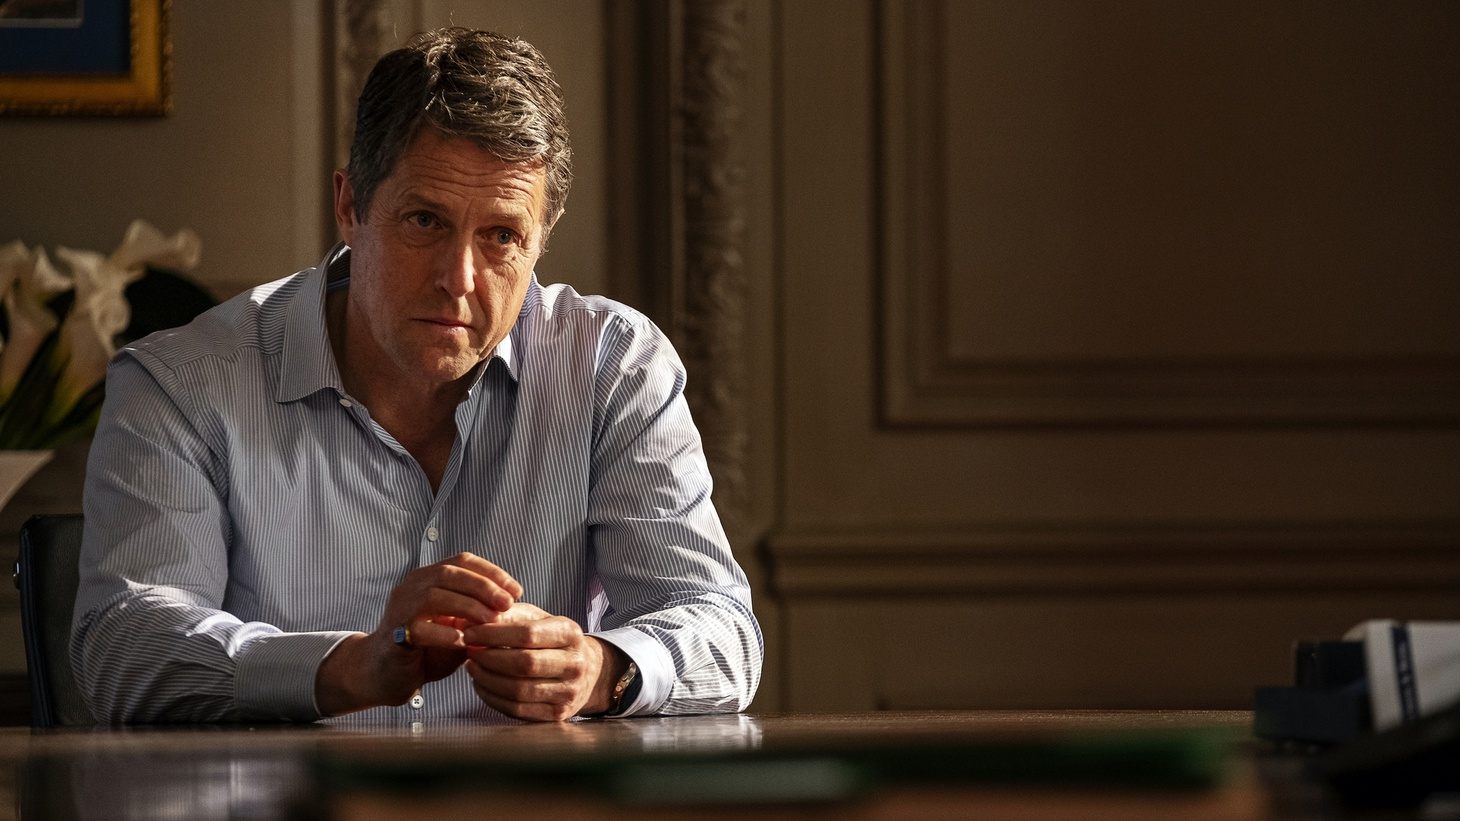 """These days, Hugh Grant wants to play the bad guy. Before taking the role in HBO's """"The Undoing,"""" he says, """"The only thing I needed to check was that I was the murderer."""""""